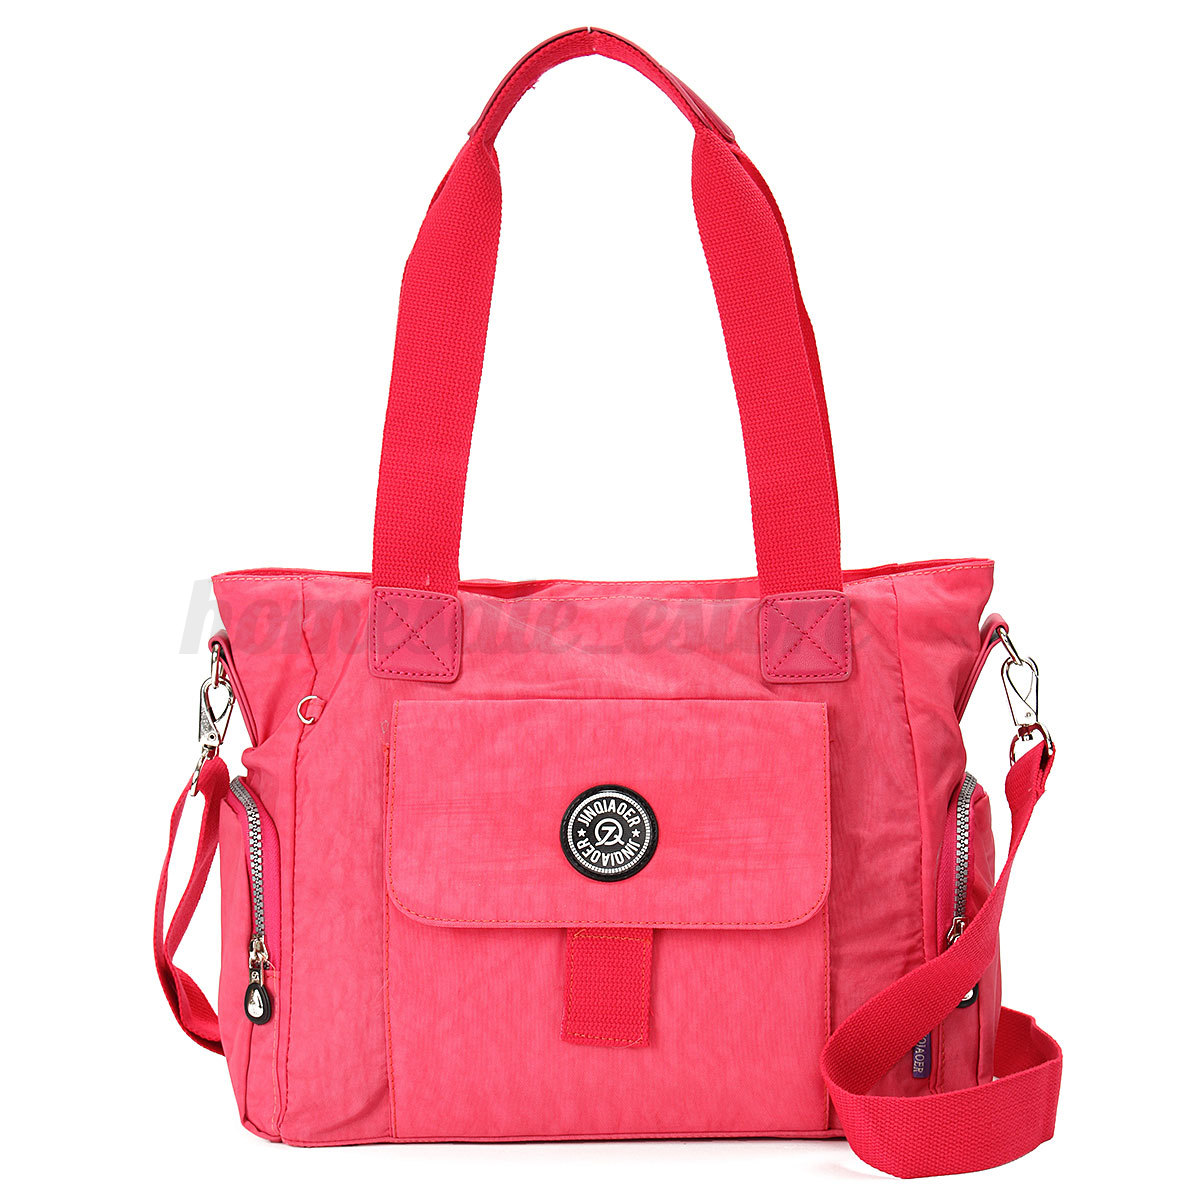 Find great deals on eBay for crossbody bags for girls. Shop with confidence.